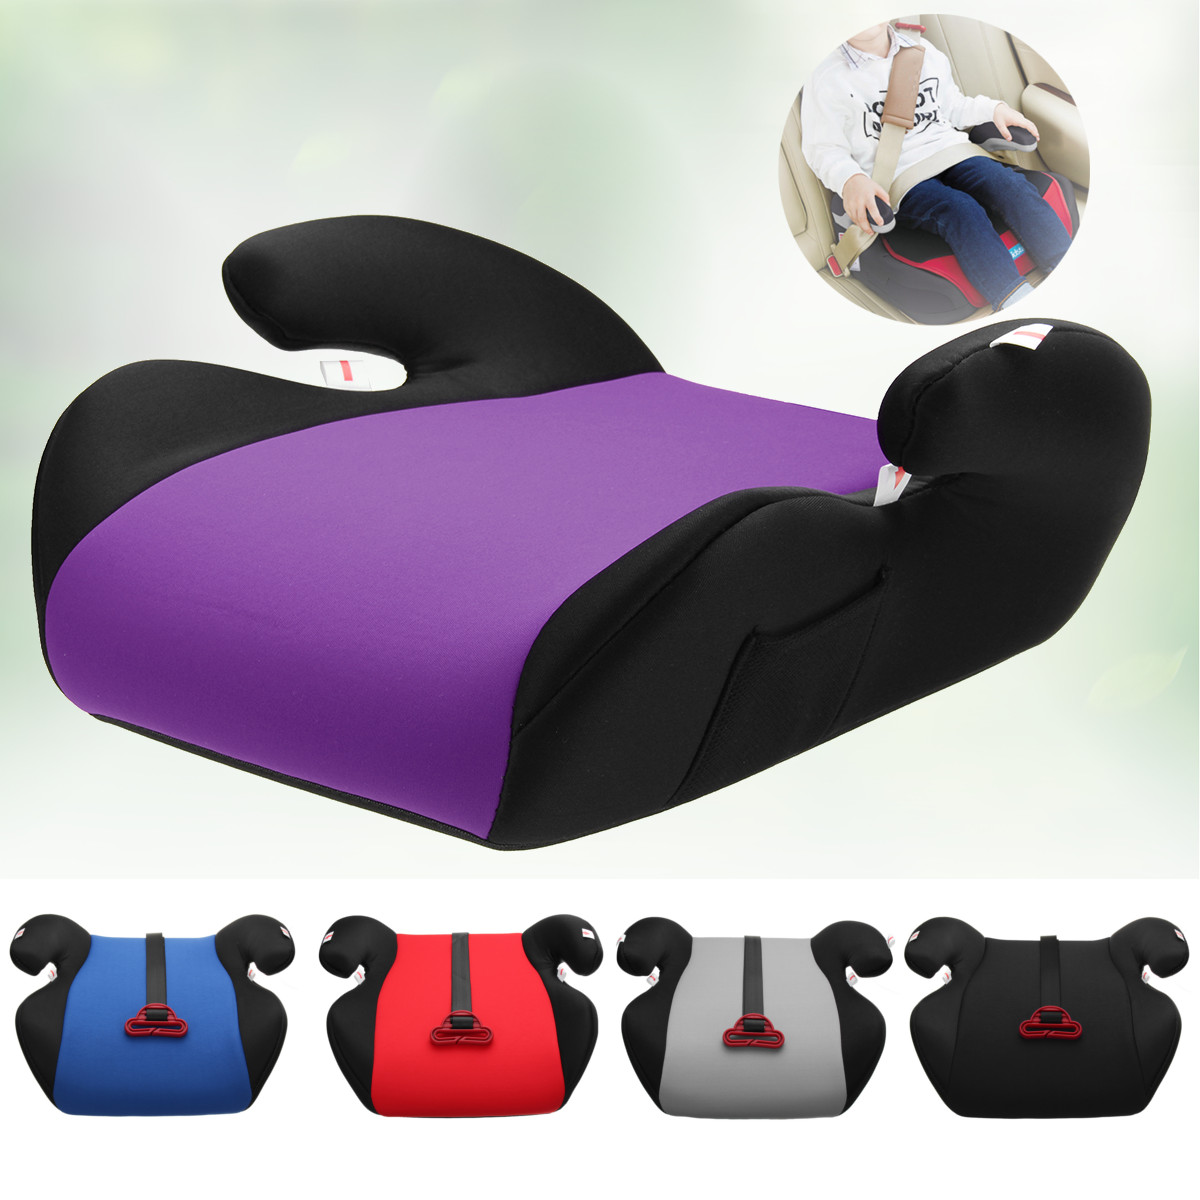 Multi-color Car Non-slip Booster Seat Safe Sturdy Kids Children Child Baby Increased Seat Pad Fits 6-12 Years Old